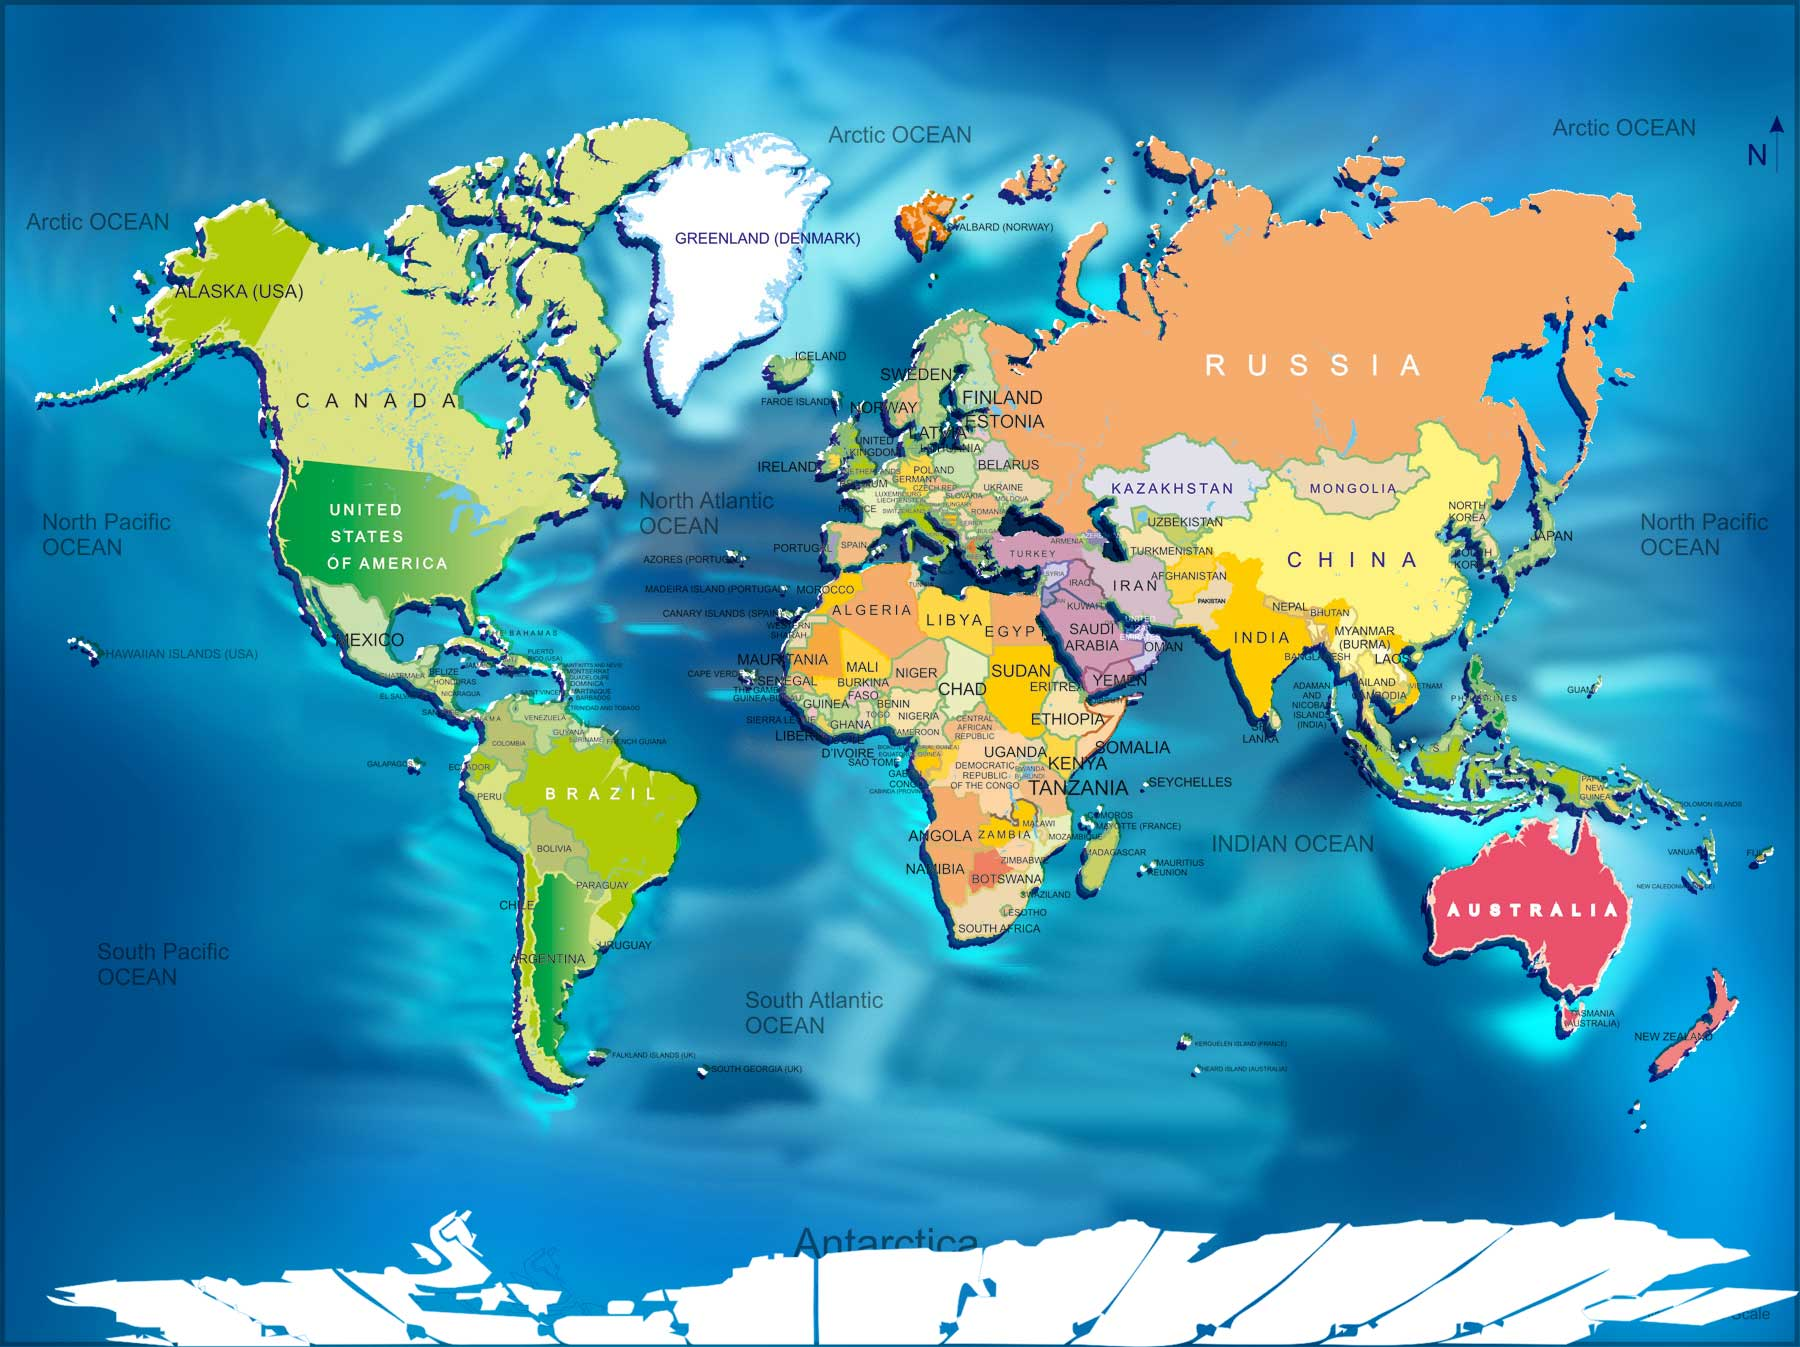 World map big size the big size world map showing details listed on the world map very clearly one can use this bigger size world map for different purpose we created this gumiabroncs Gallery